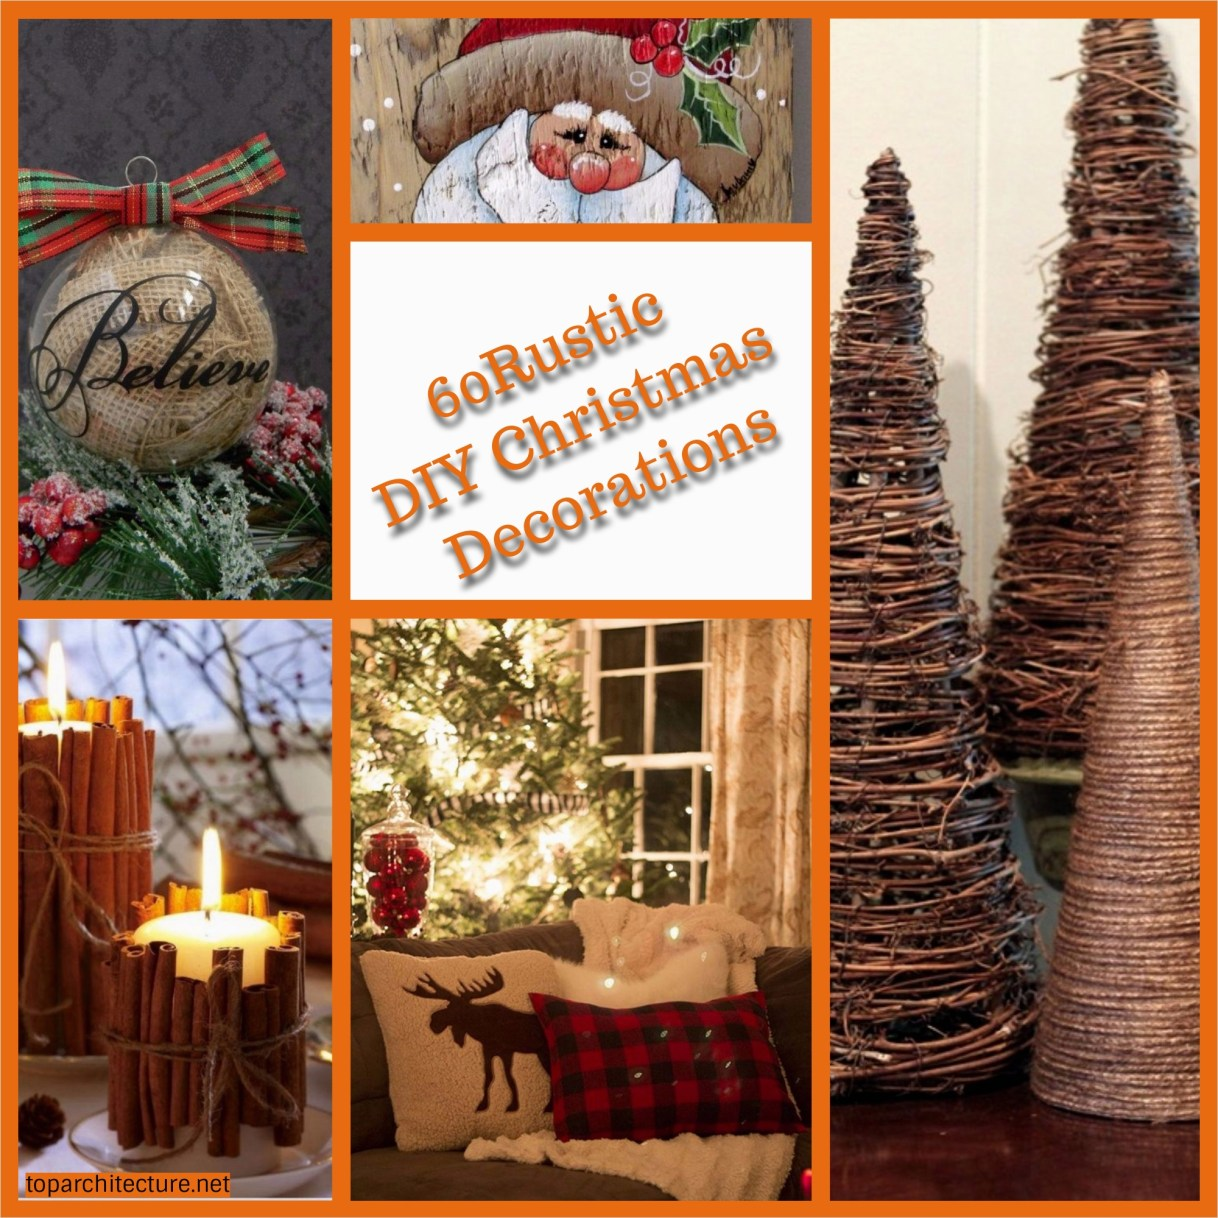 45 Diy Rustic Christmas Decorations 35 60 Rustic Diy Christmas Decorations toparchitecture 3